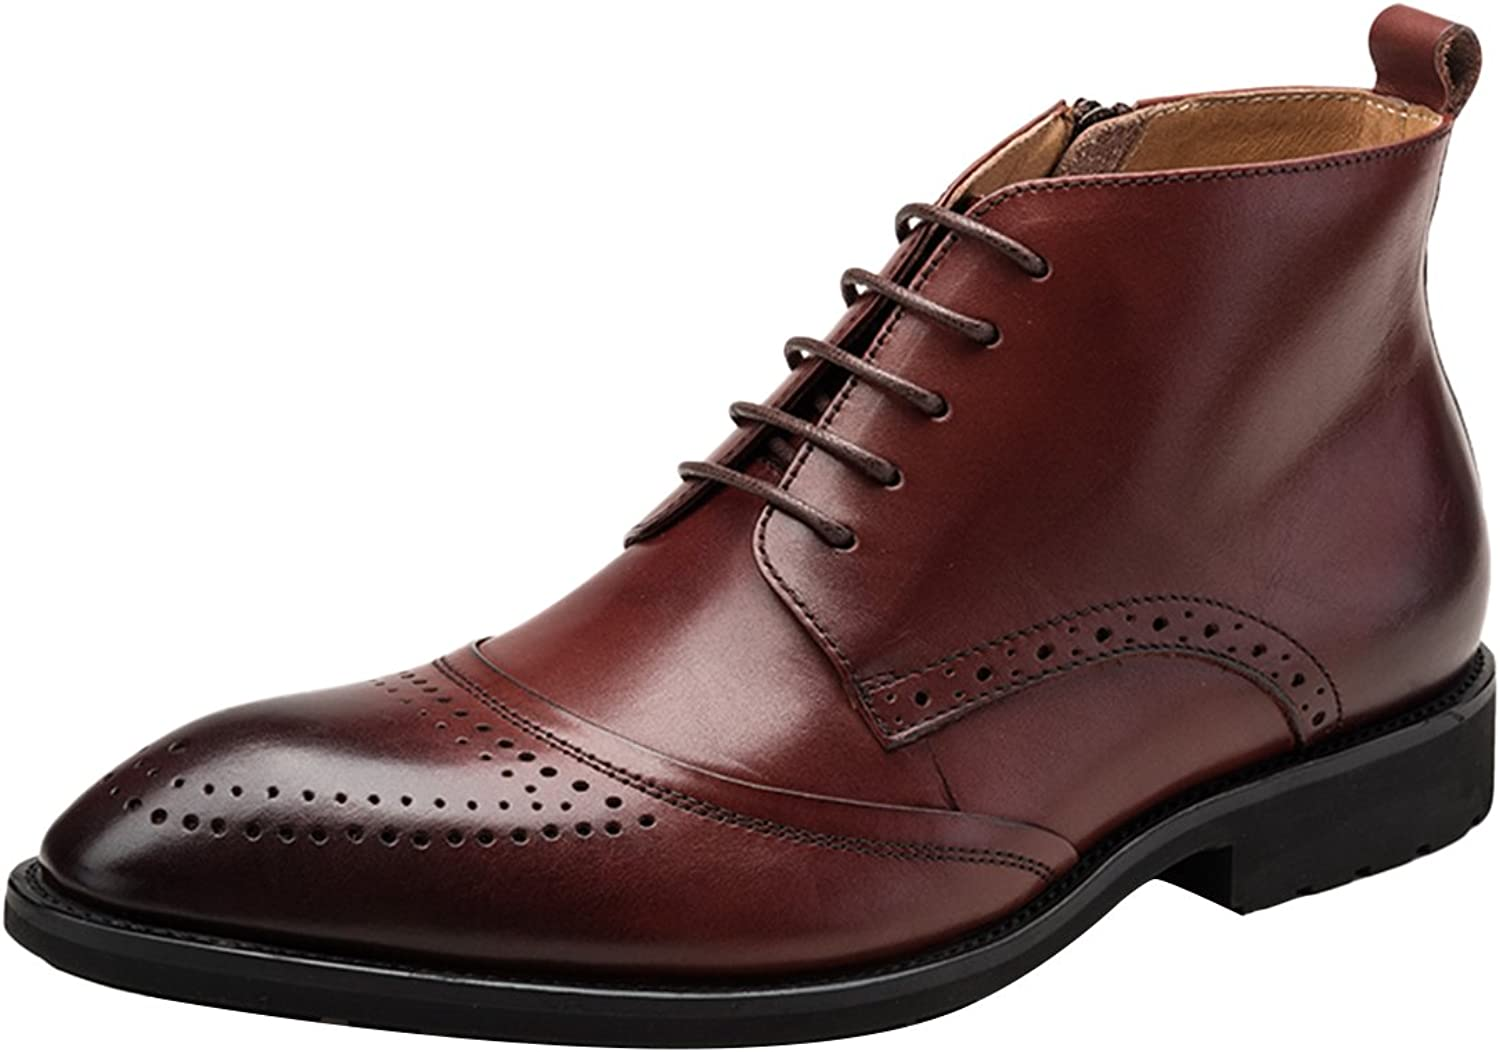 ICEGREY Men's Ankle Boot Derby Cap Toe Oxford Lace up Formal shoes